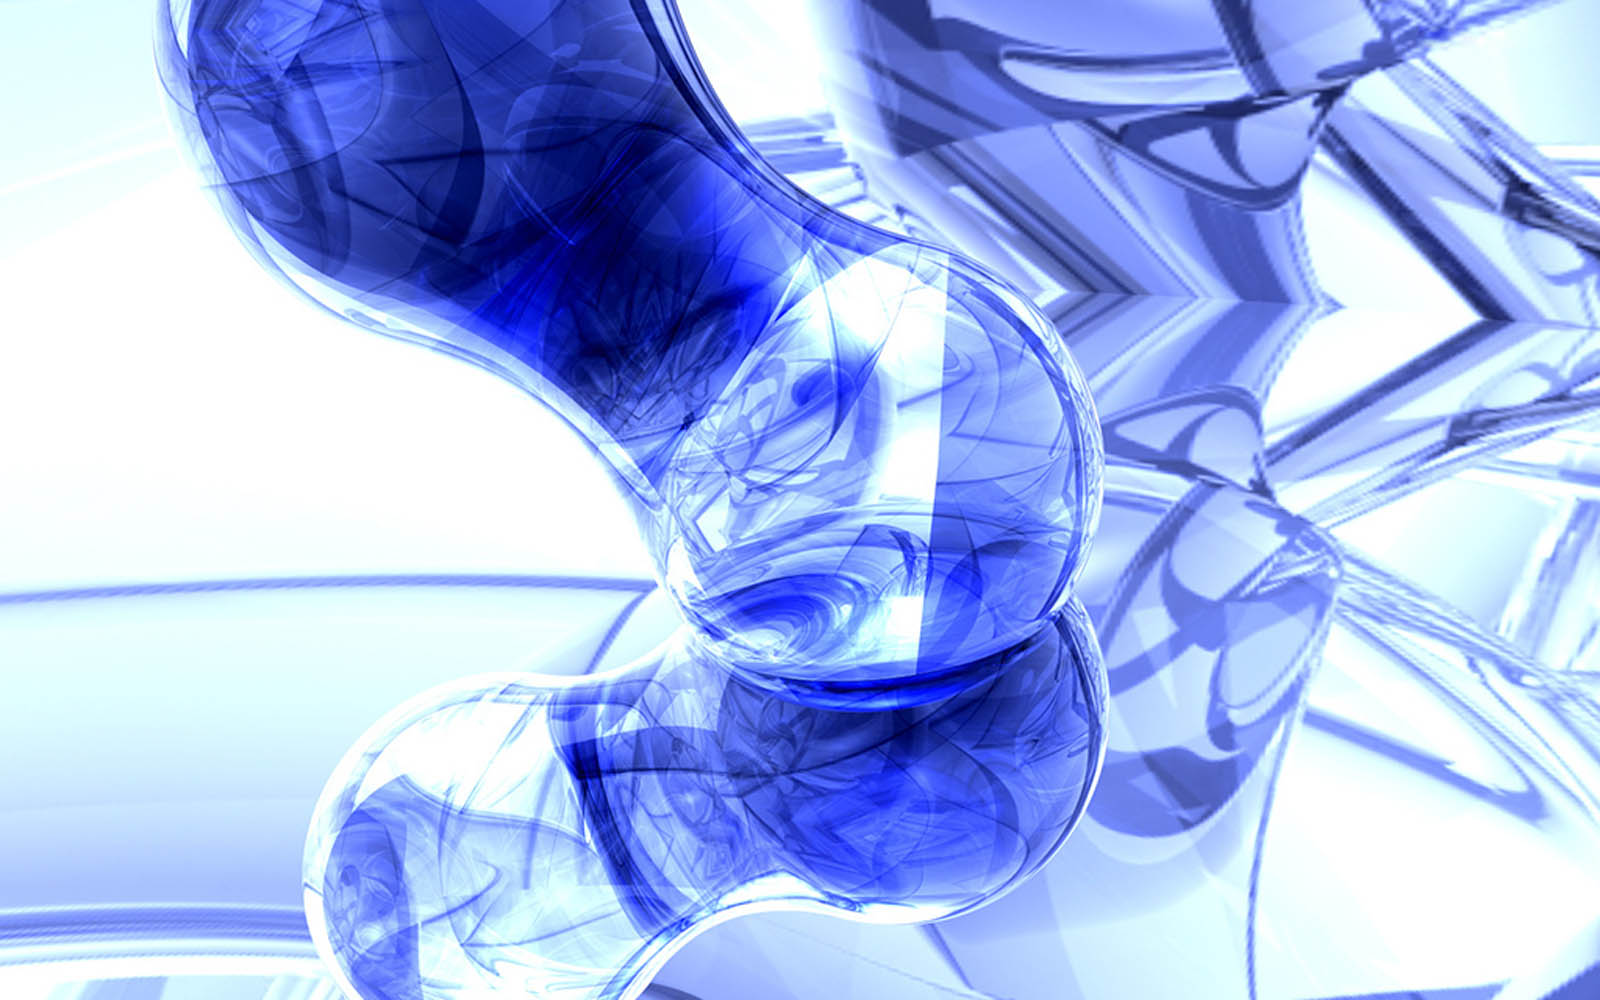 Awesome 3D Wallpaper Blue